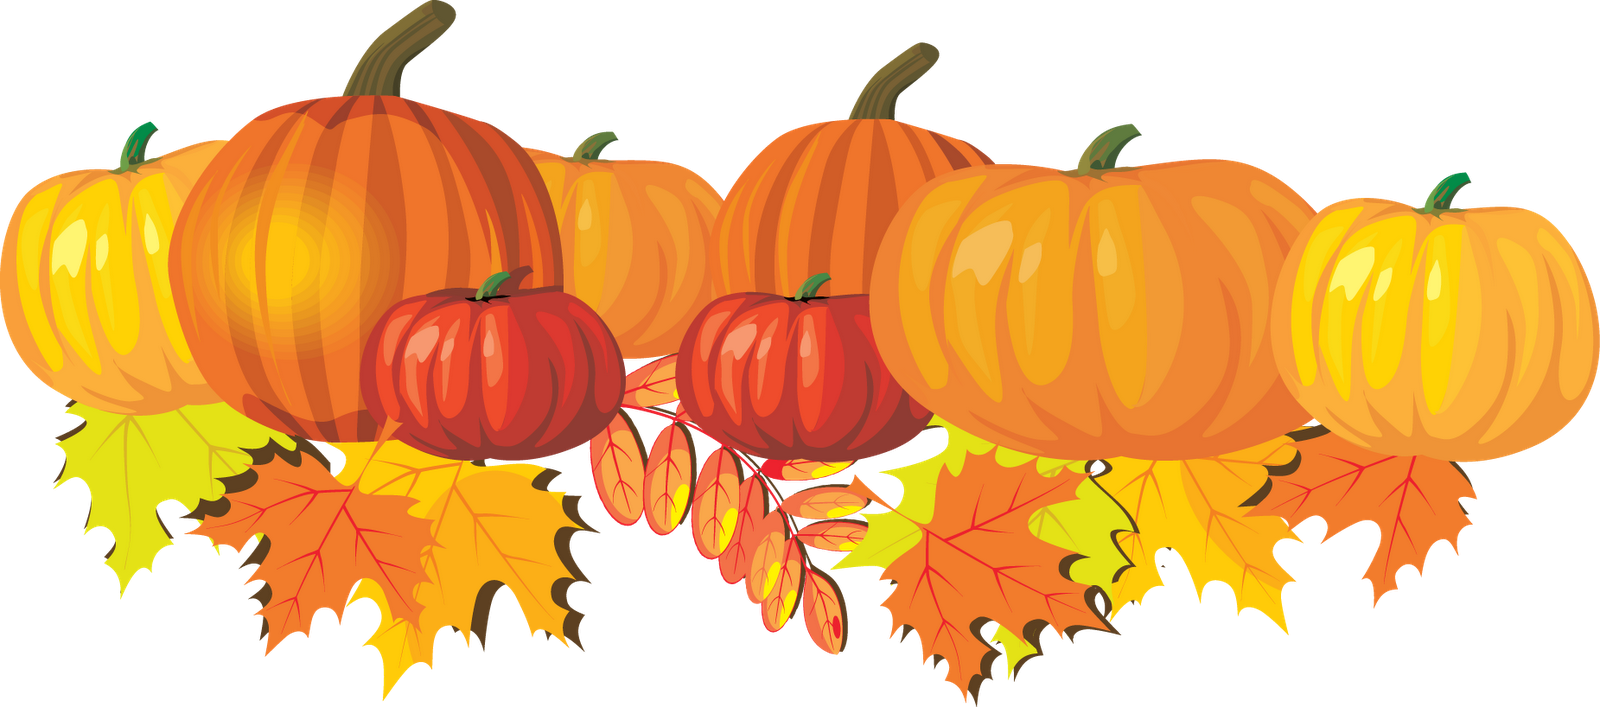 Pumpkin and gourd clipart vector transparent library 28+ Collection of Fall Season Clipart Pumpkin | High quality, free ... vector transparent library